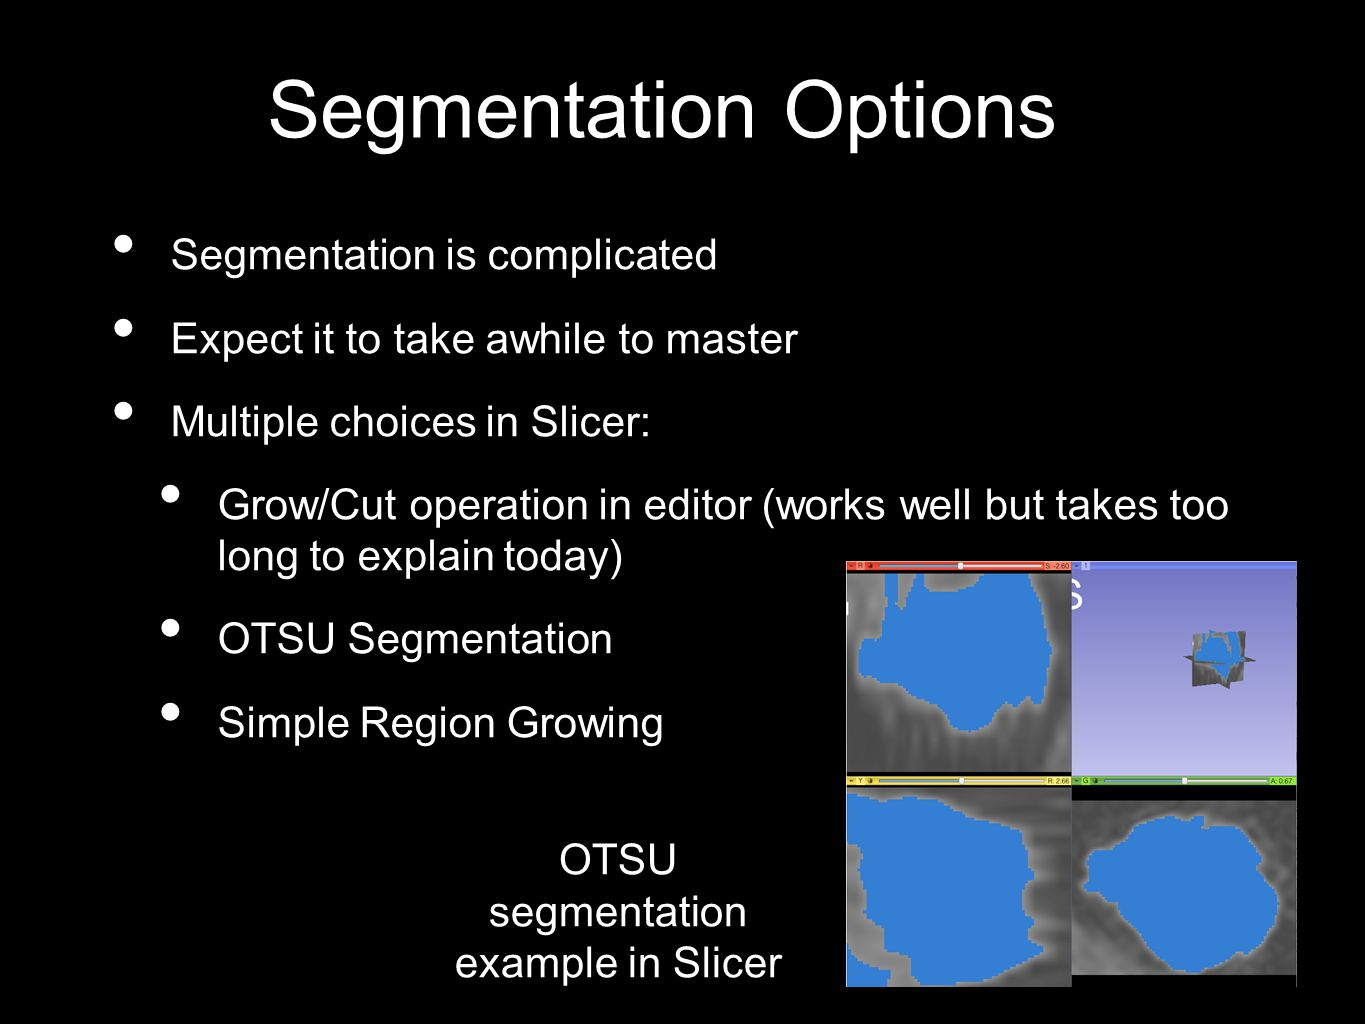 Segmentation Options Segmentation is complicated Expect it to take awhile to master Multiple choices in Slicer: Grow/Cut operation in editor (works well but takes too long to explain today) OTSU Segmentation Simple Region Growing OTSU segmentation example in Slicer